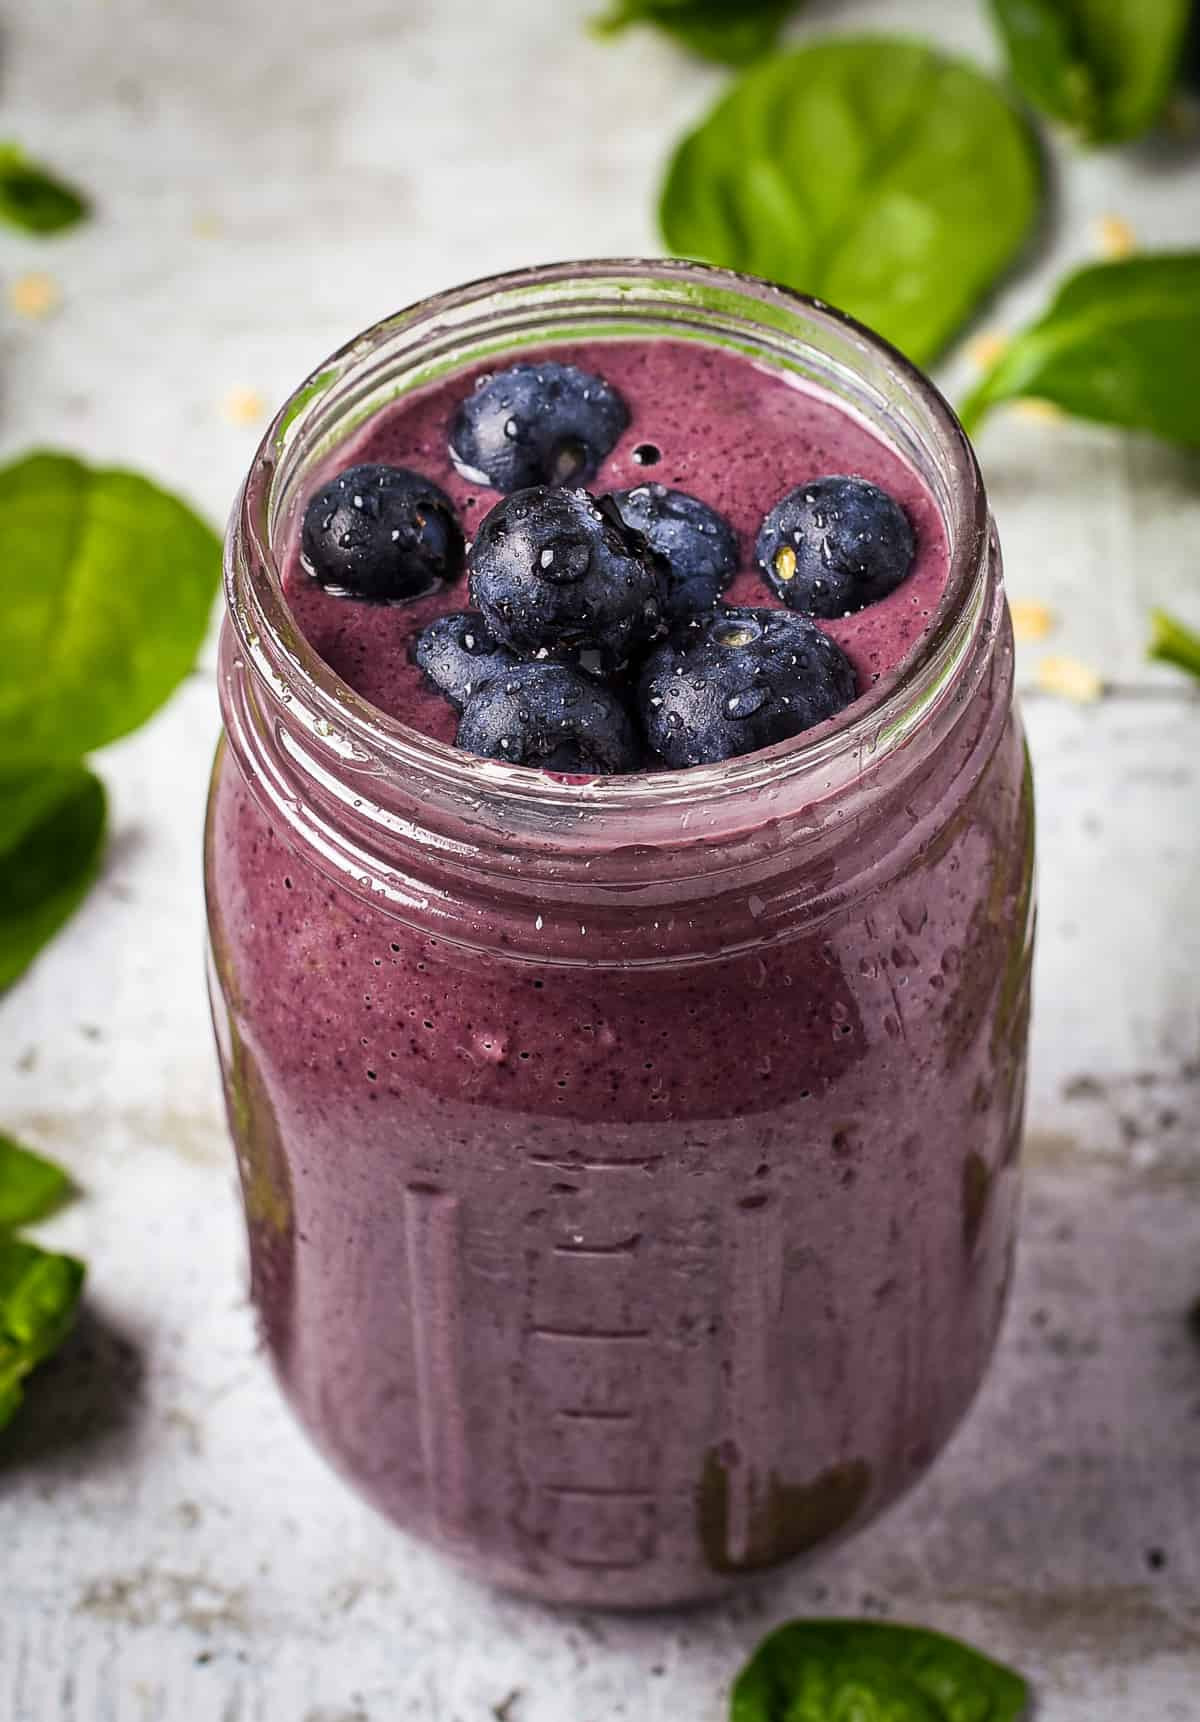 Berry smoothie with fresh blueberries on top.